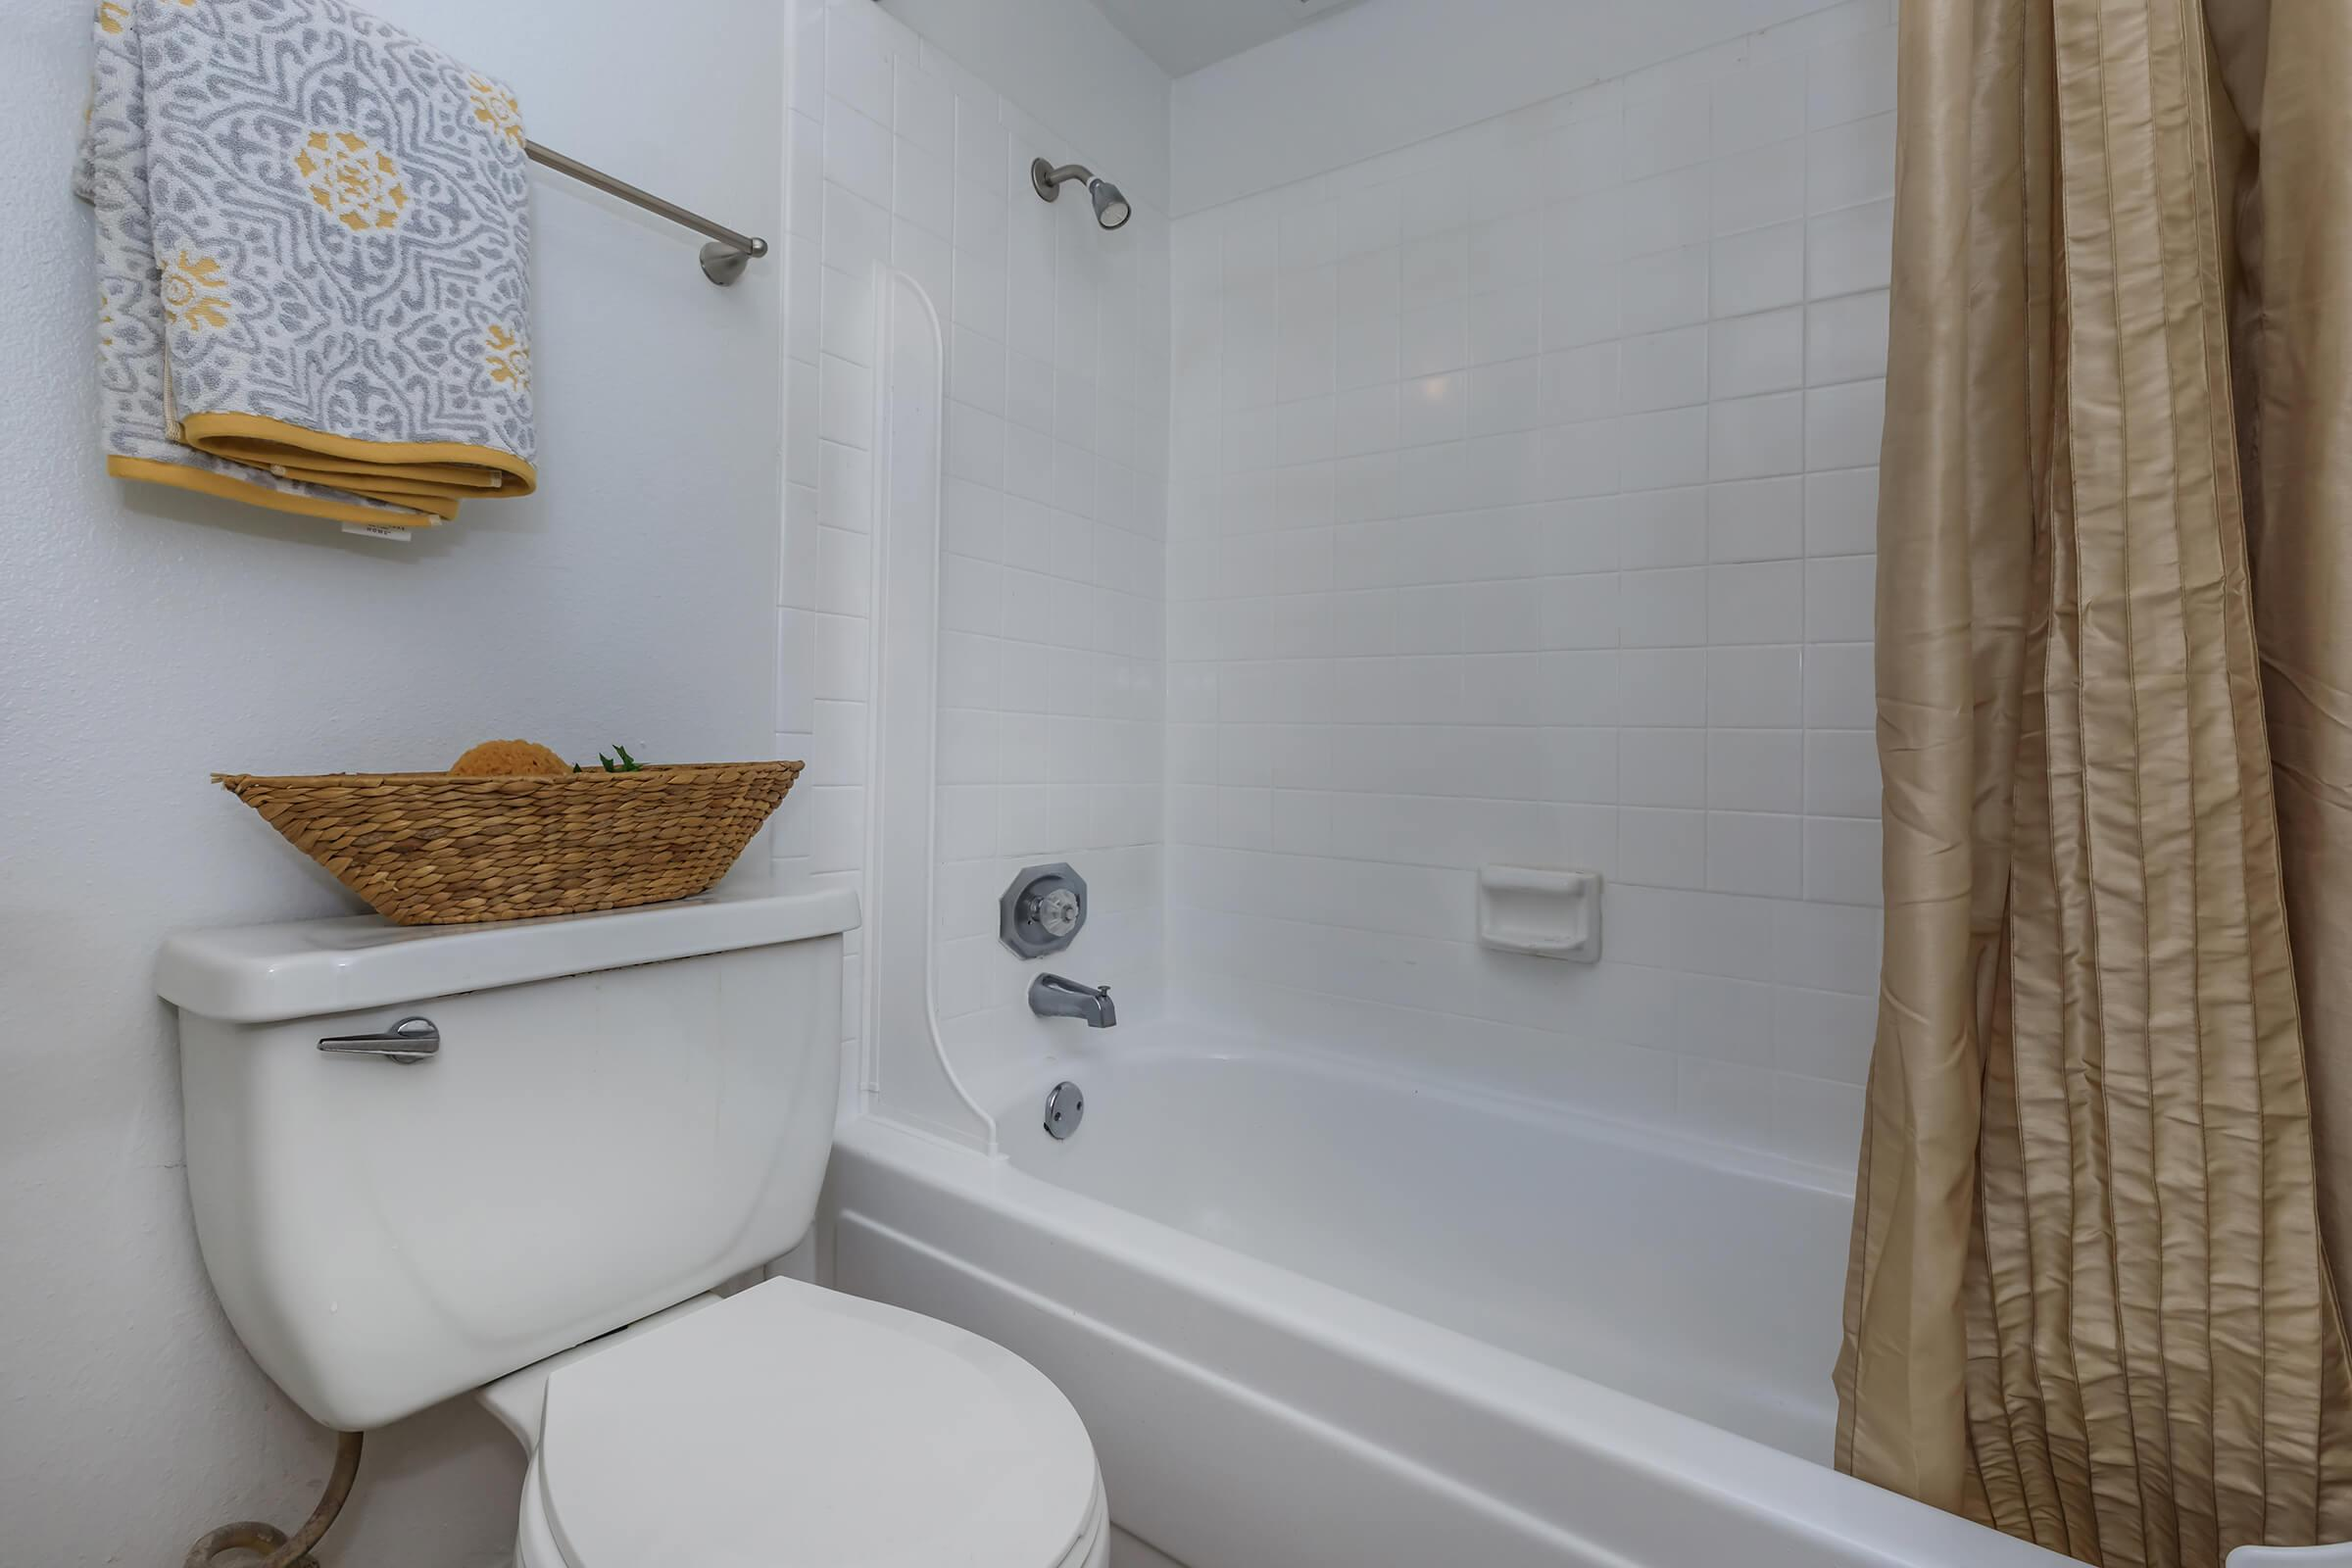 a shower curtain next to a tub